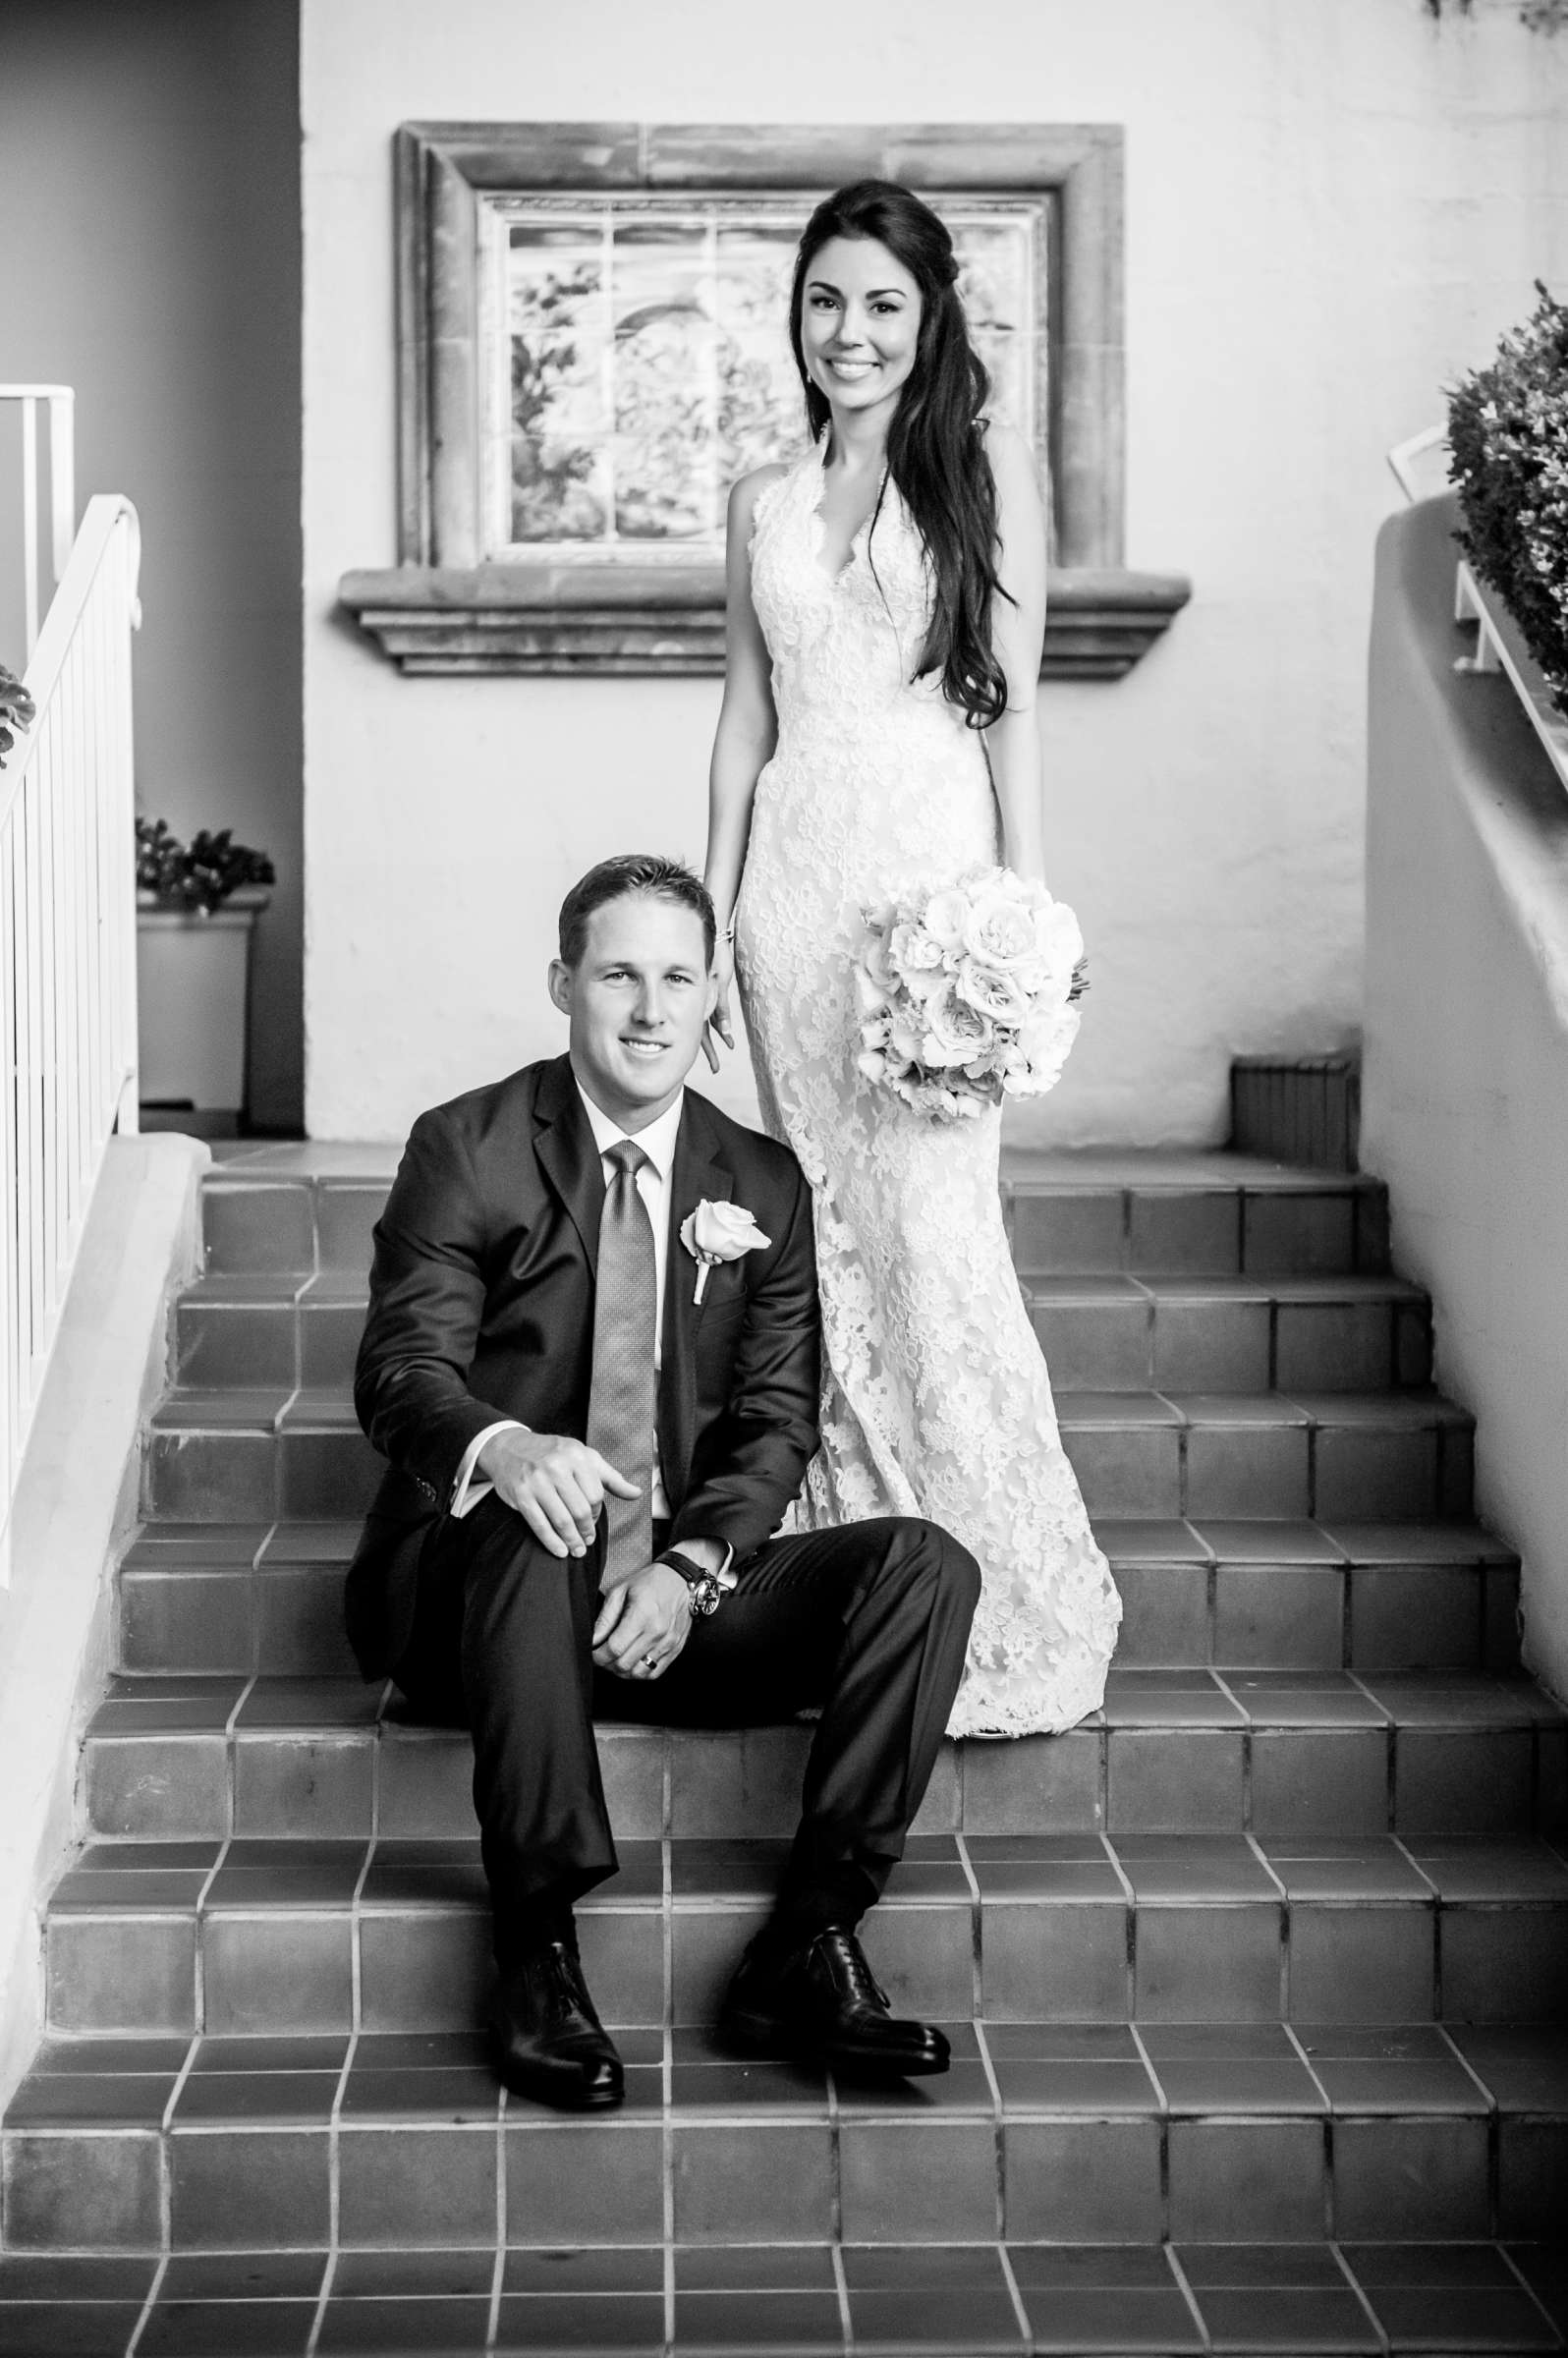 La Valencia Wedding coordinated by First Comes Love Weddings & Events, Lea and Nick Wedding Photo #8 by True Photography